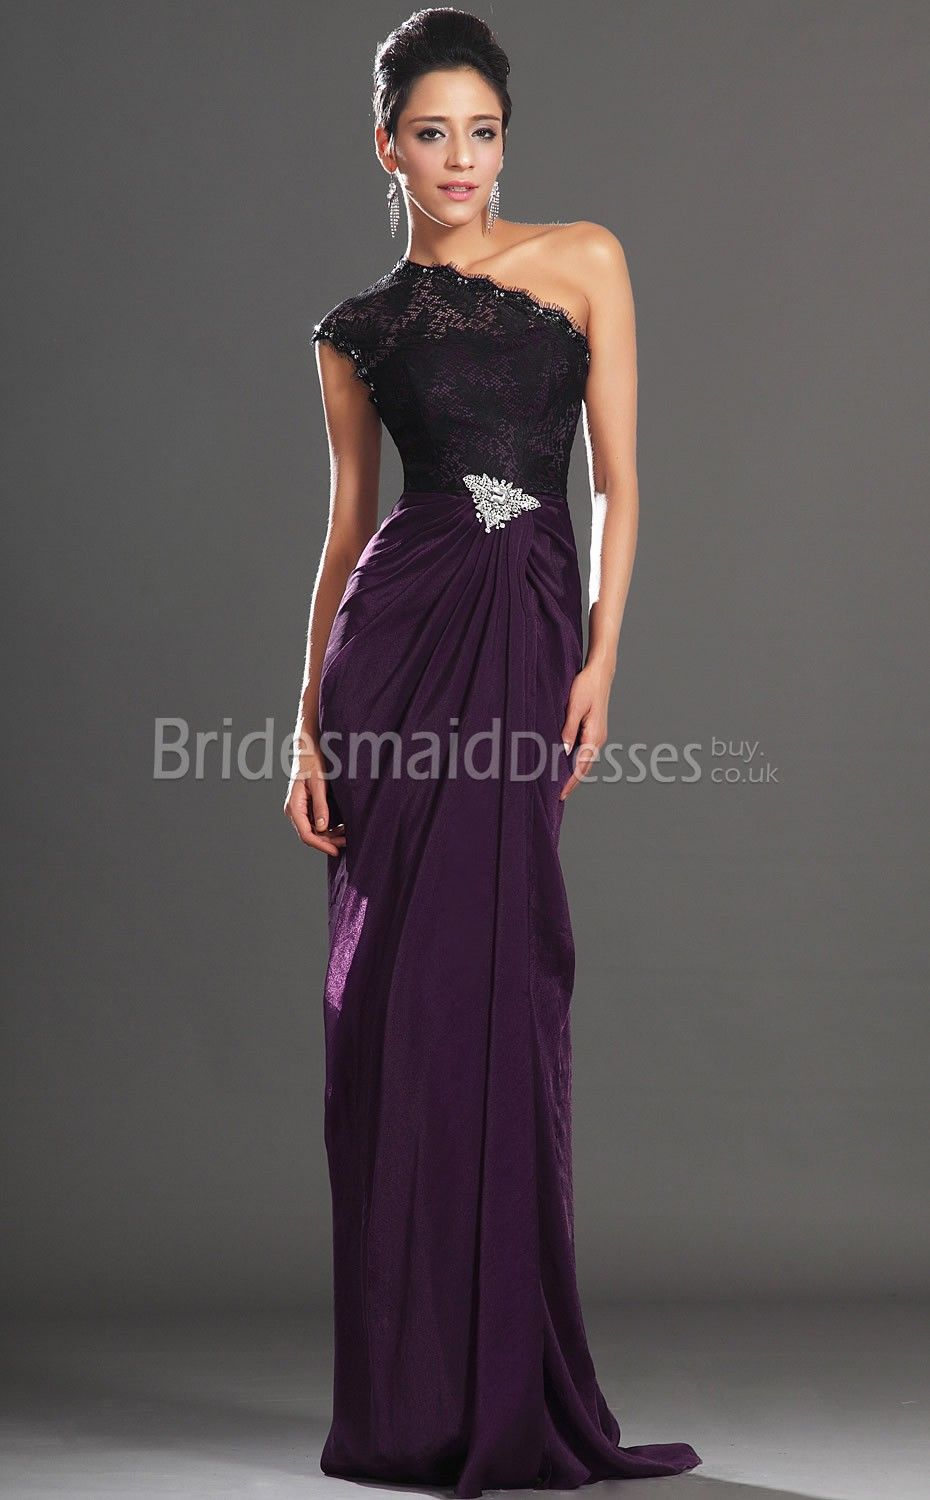 9baef5532fbc Sexy Grape Chiffon Trumpet Mermaid One Shoulder Floor-length Split Front Bridesmaid  Dresses(UKBD03-514) - BridesmaidDressesBuy.co.uk